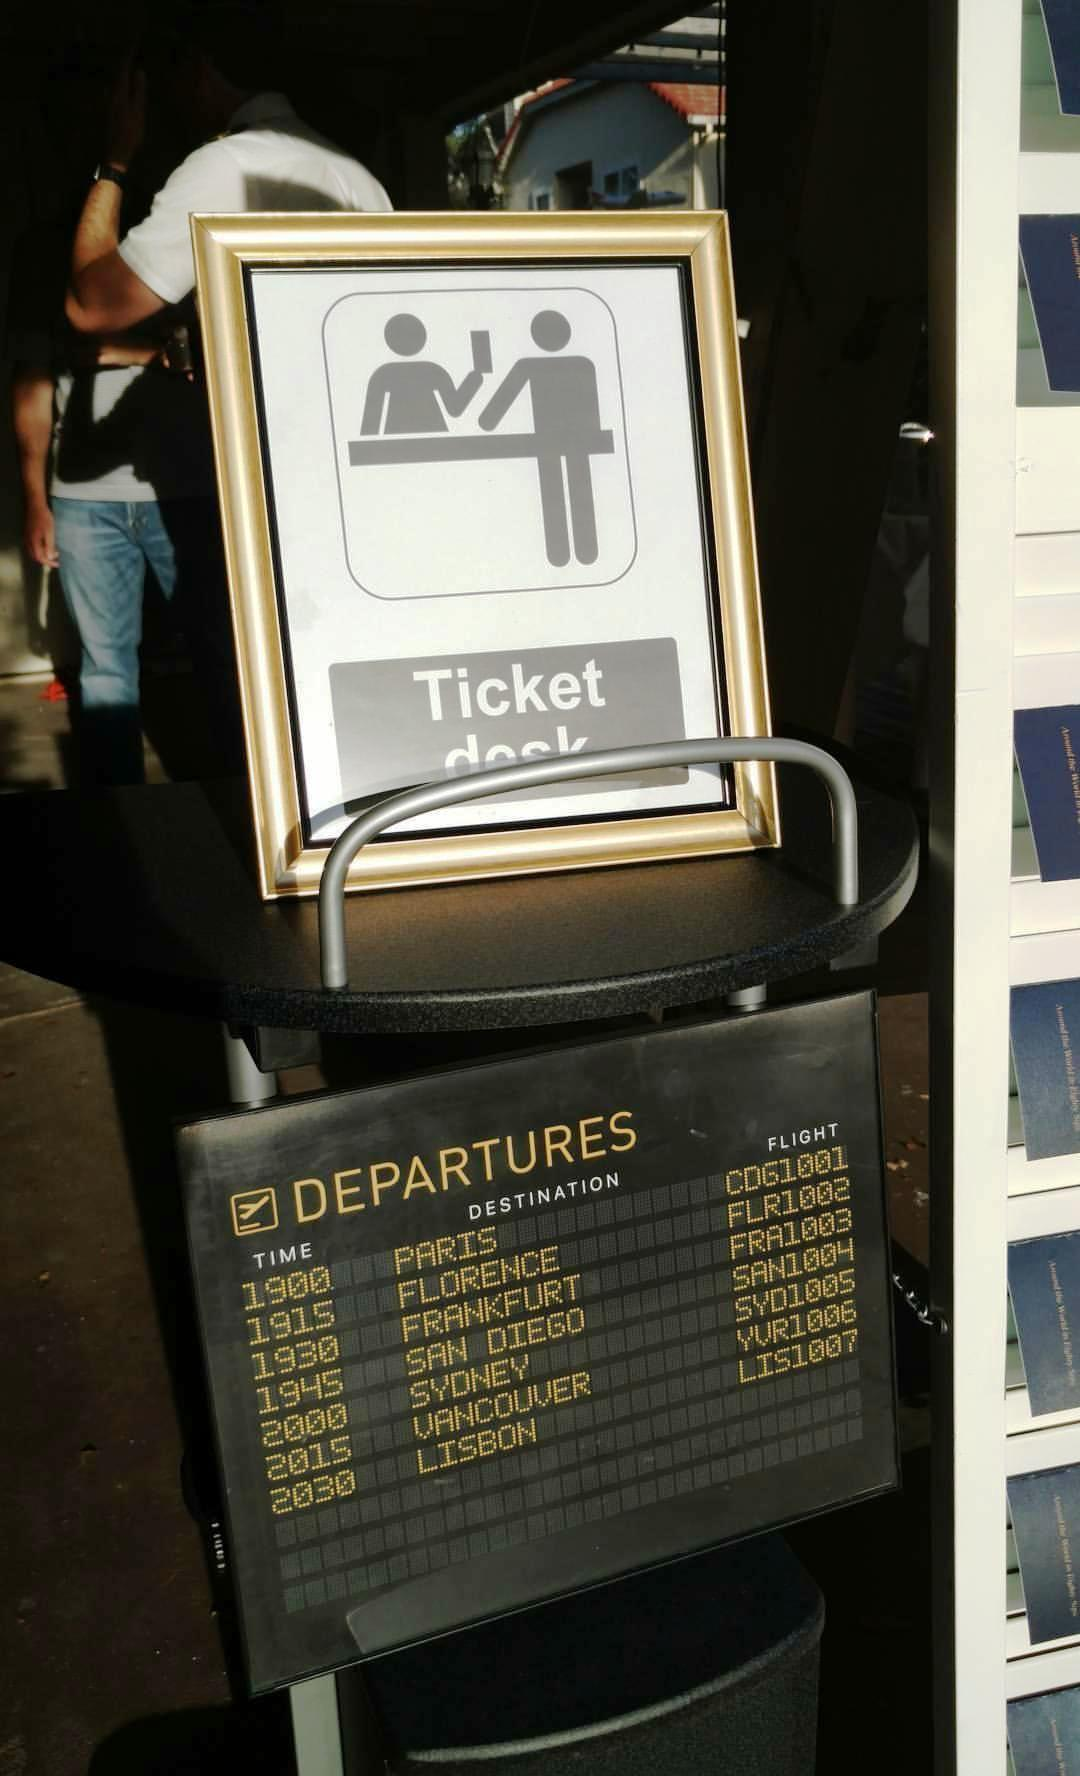 You can commission your own  departure board here